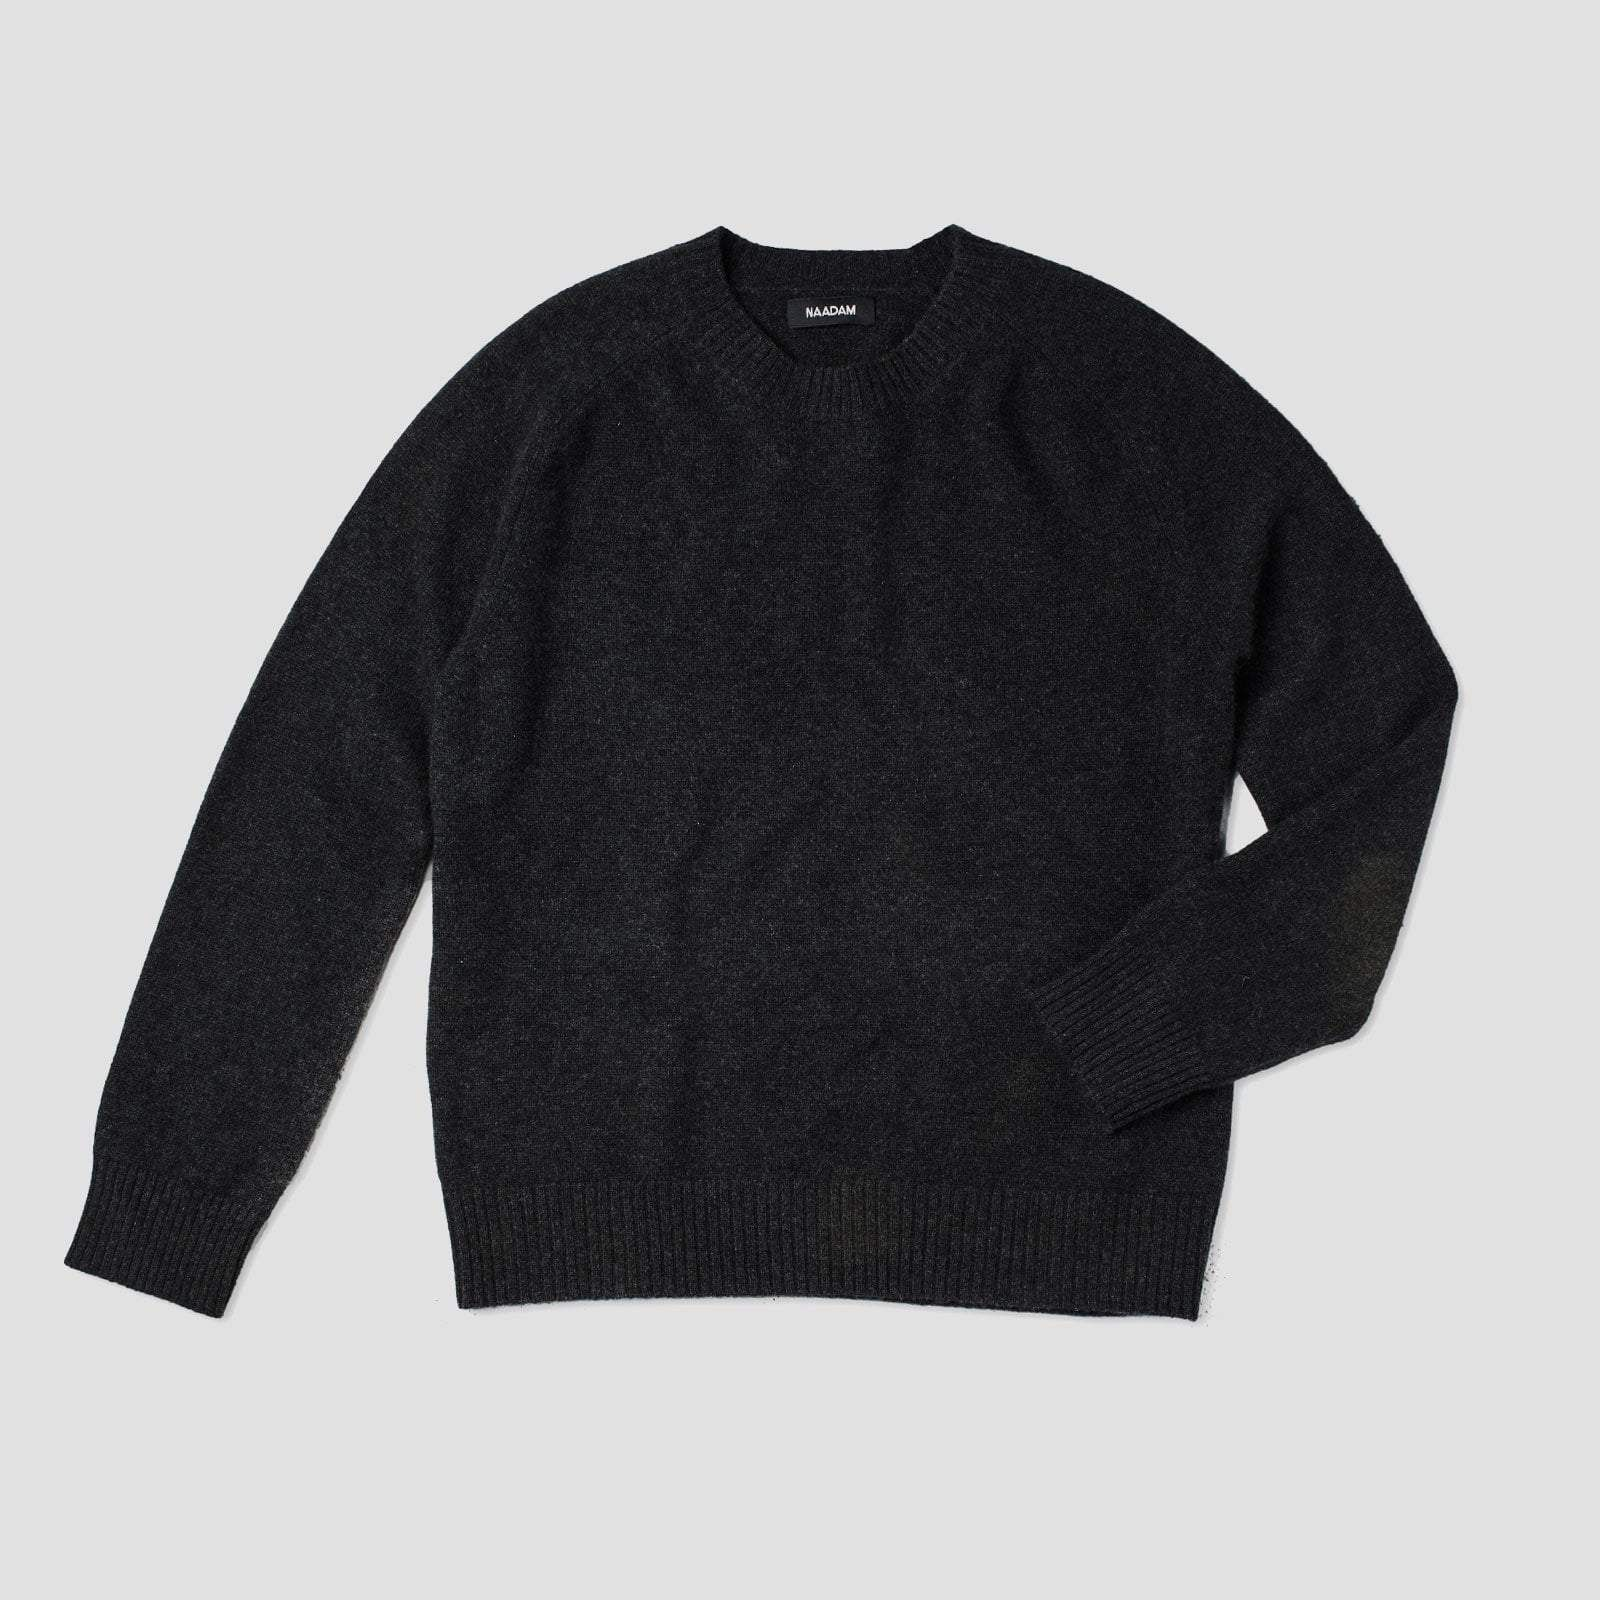 The luxe unisex cashmere sweater black in products pinterest